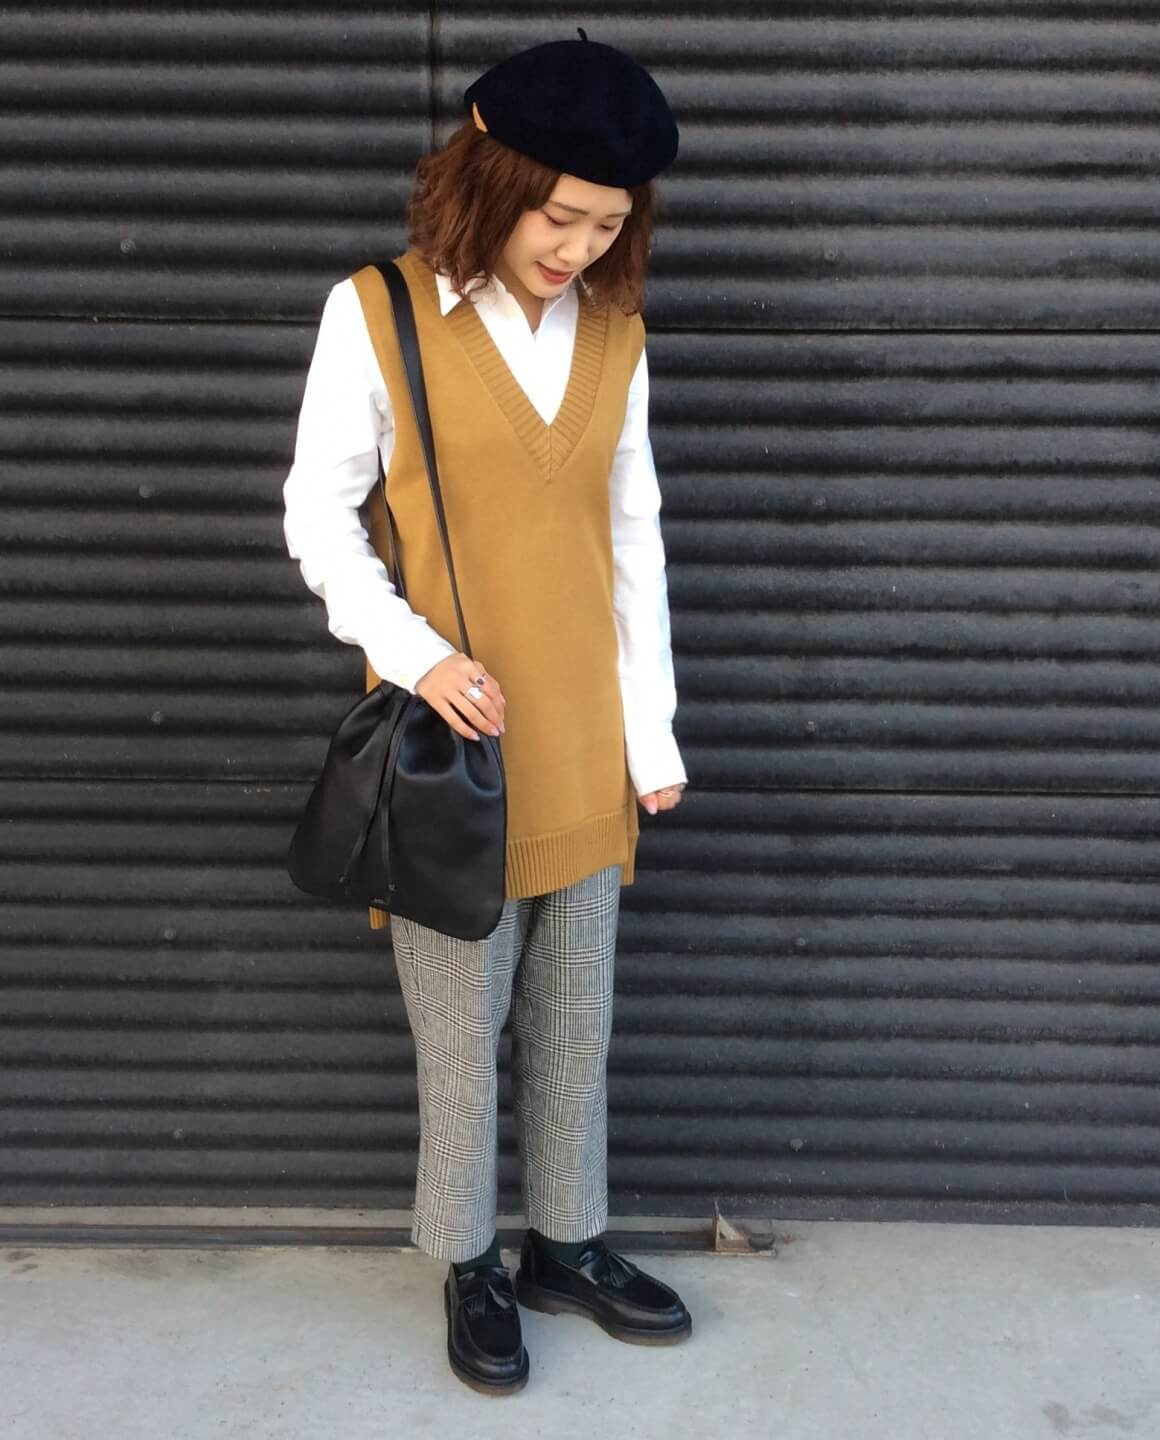 SPRING KNIT STYLE